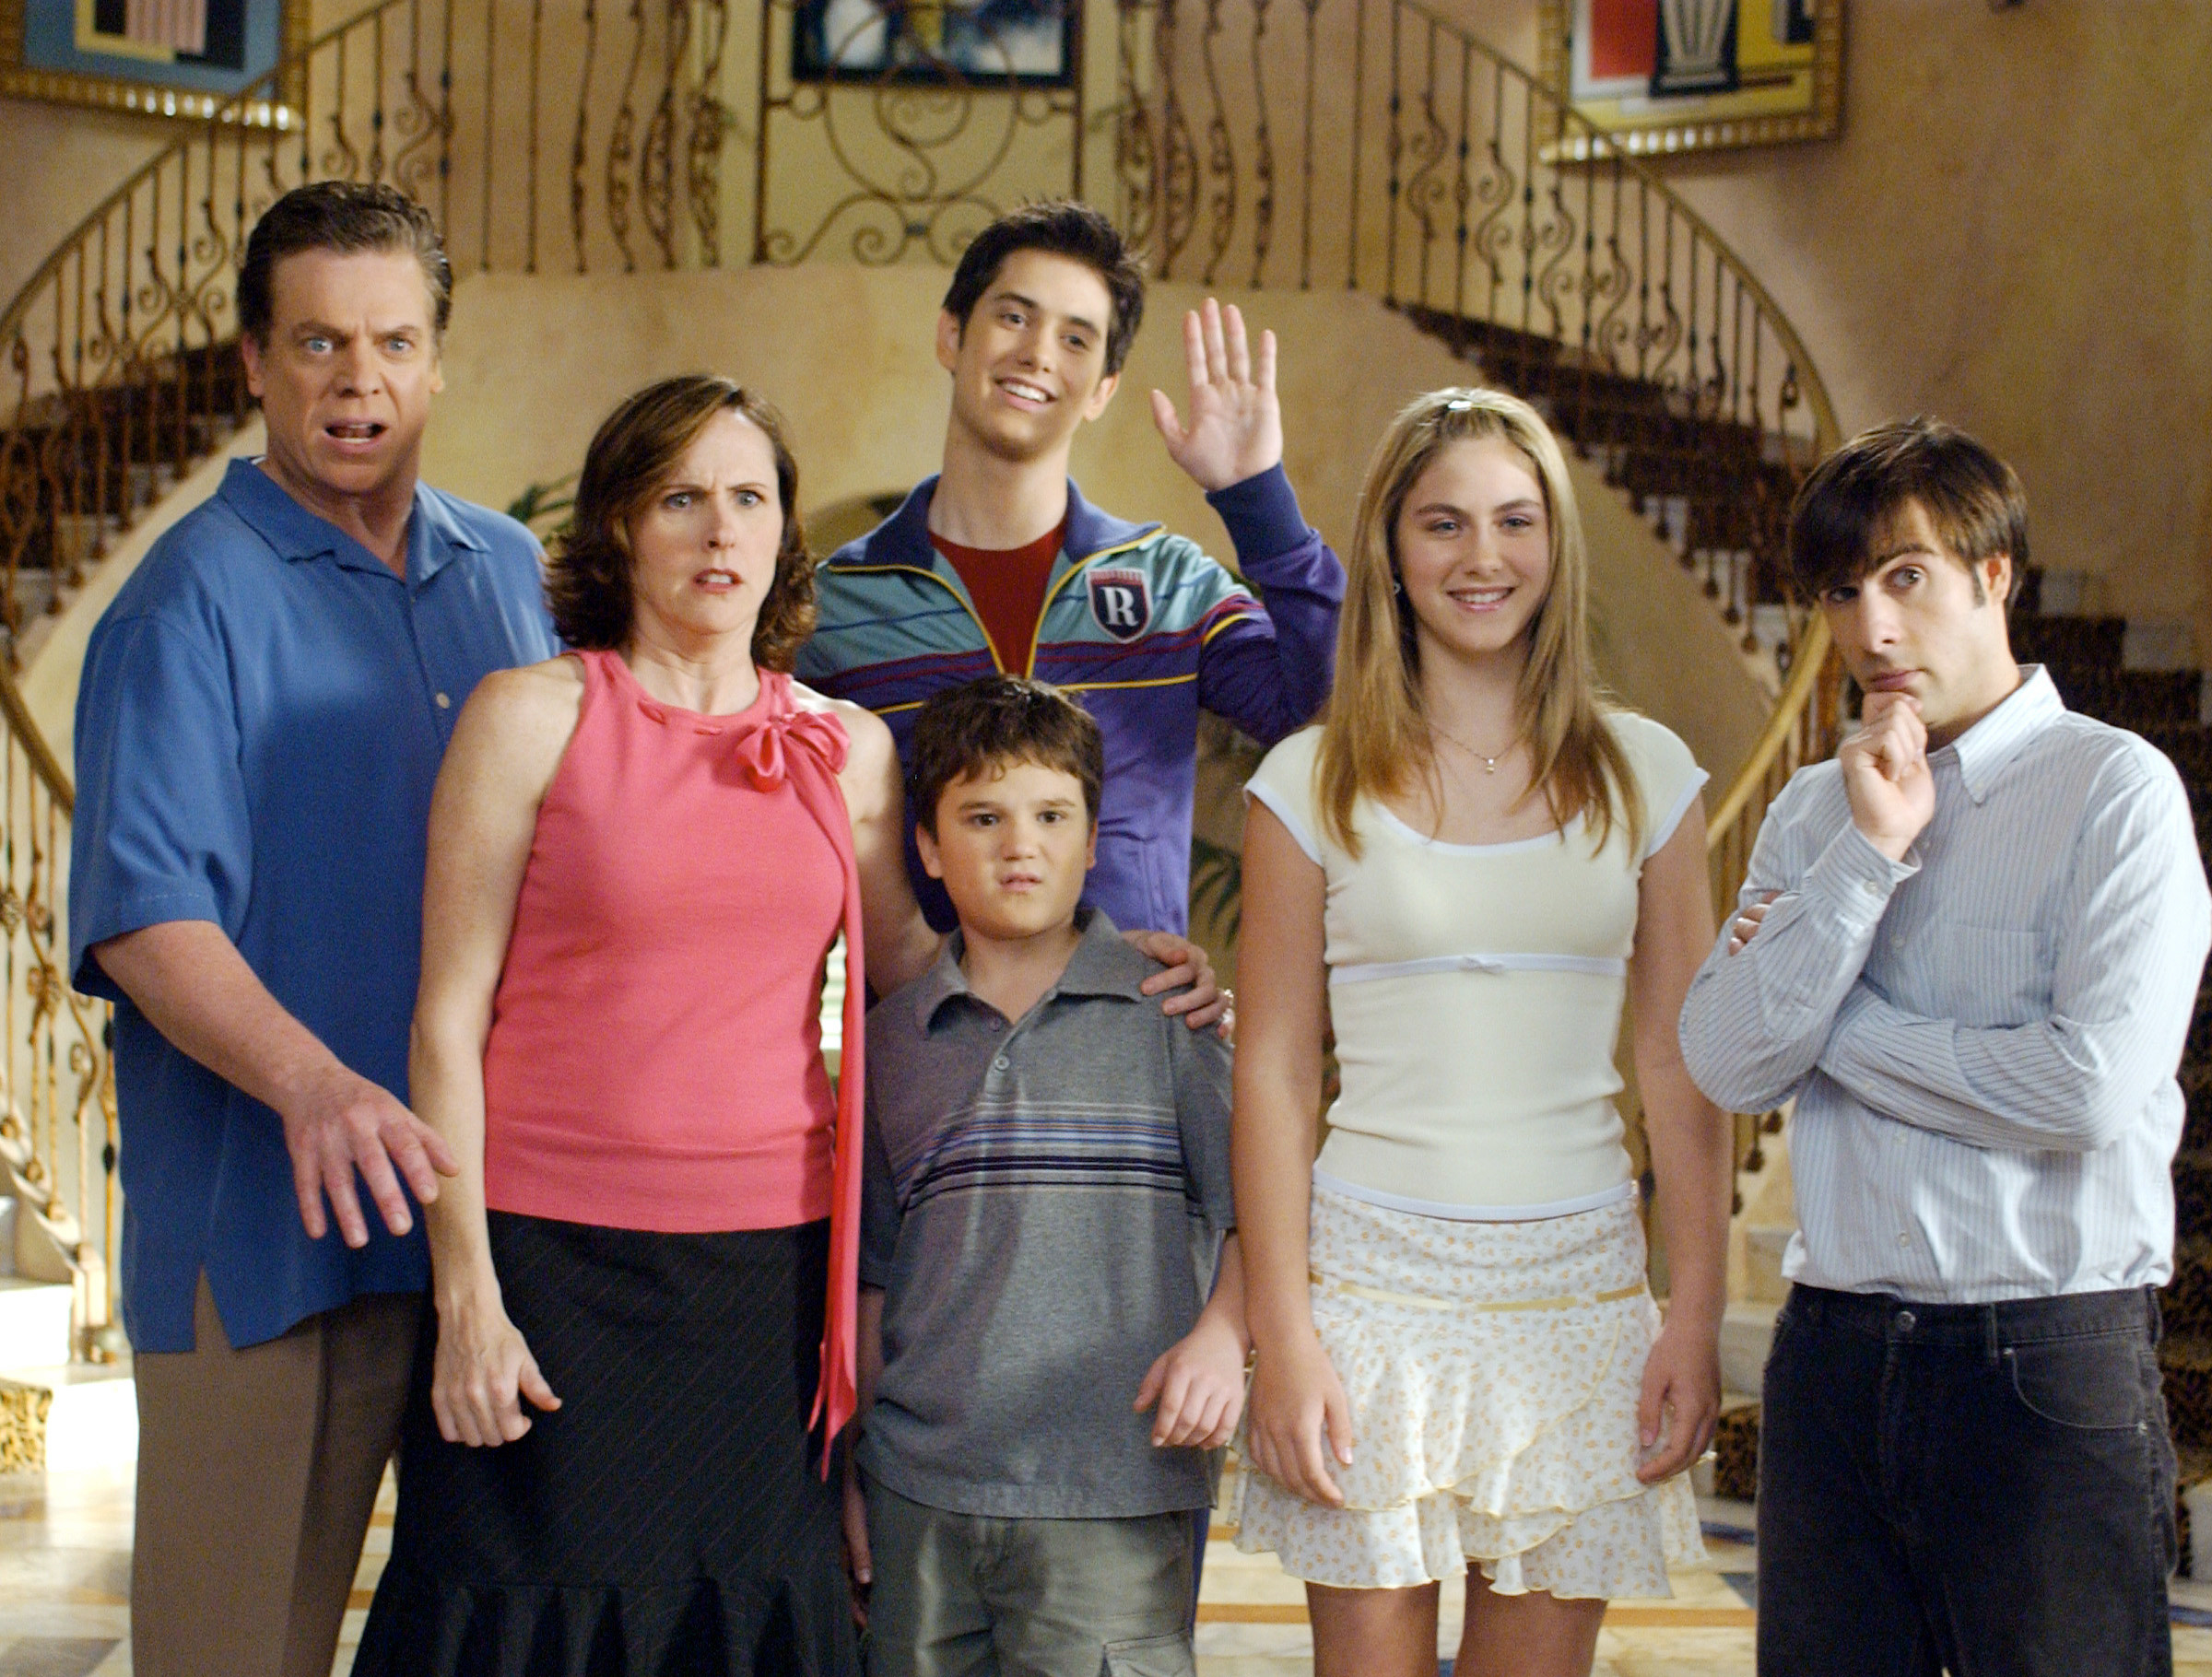 Chris McDonald, Molly Shannon, Jake Sandvig, Bret Loehr, Caitlin Wachs, and Jason Schwartzman stand in the foyer of a mansion